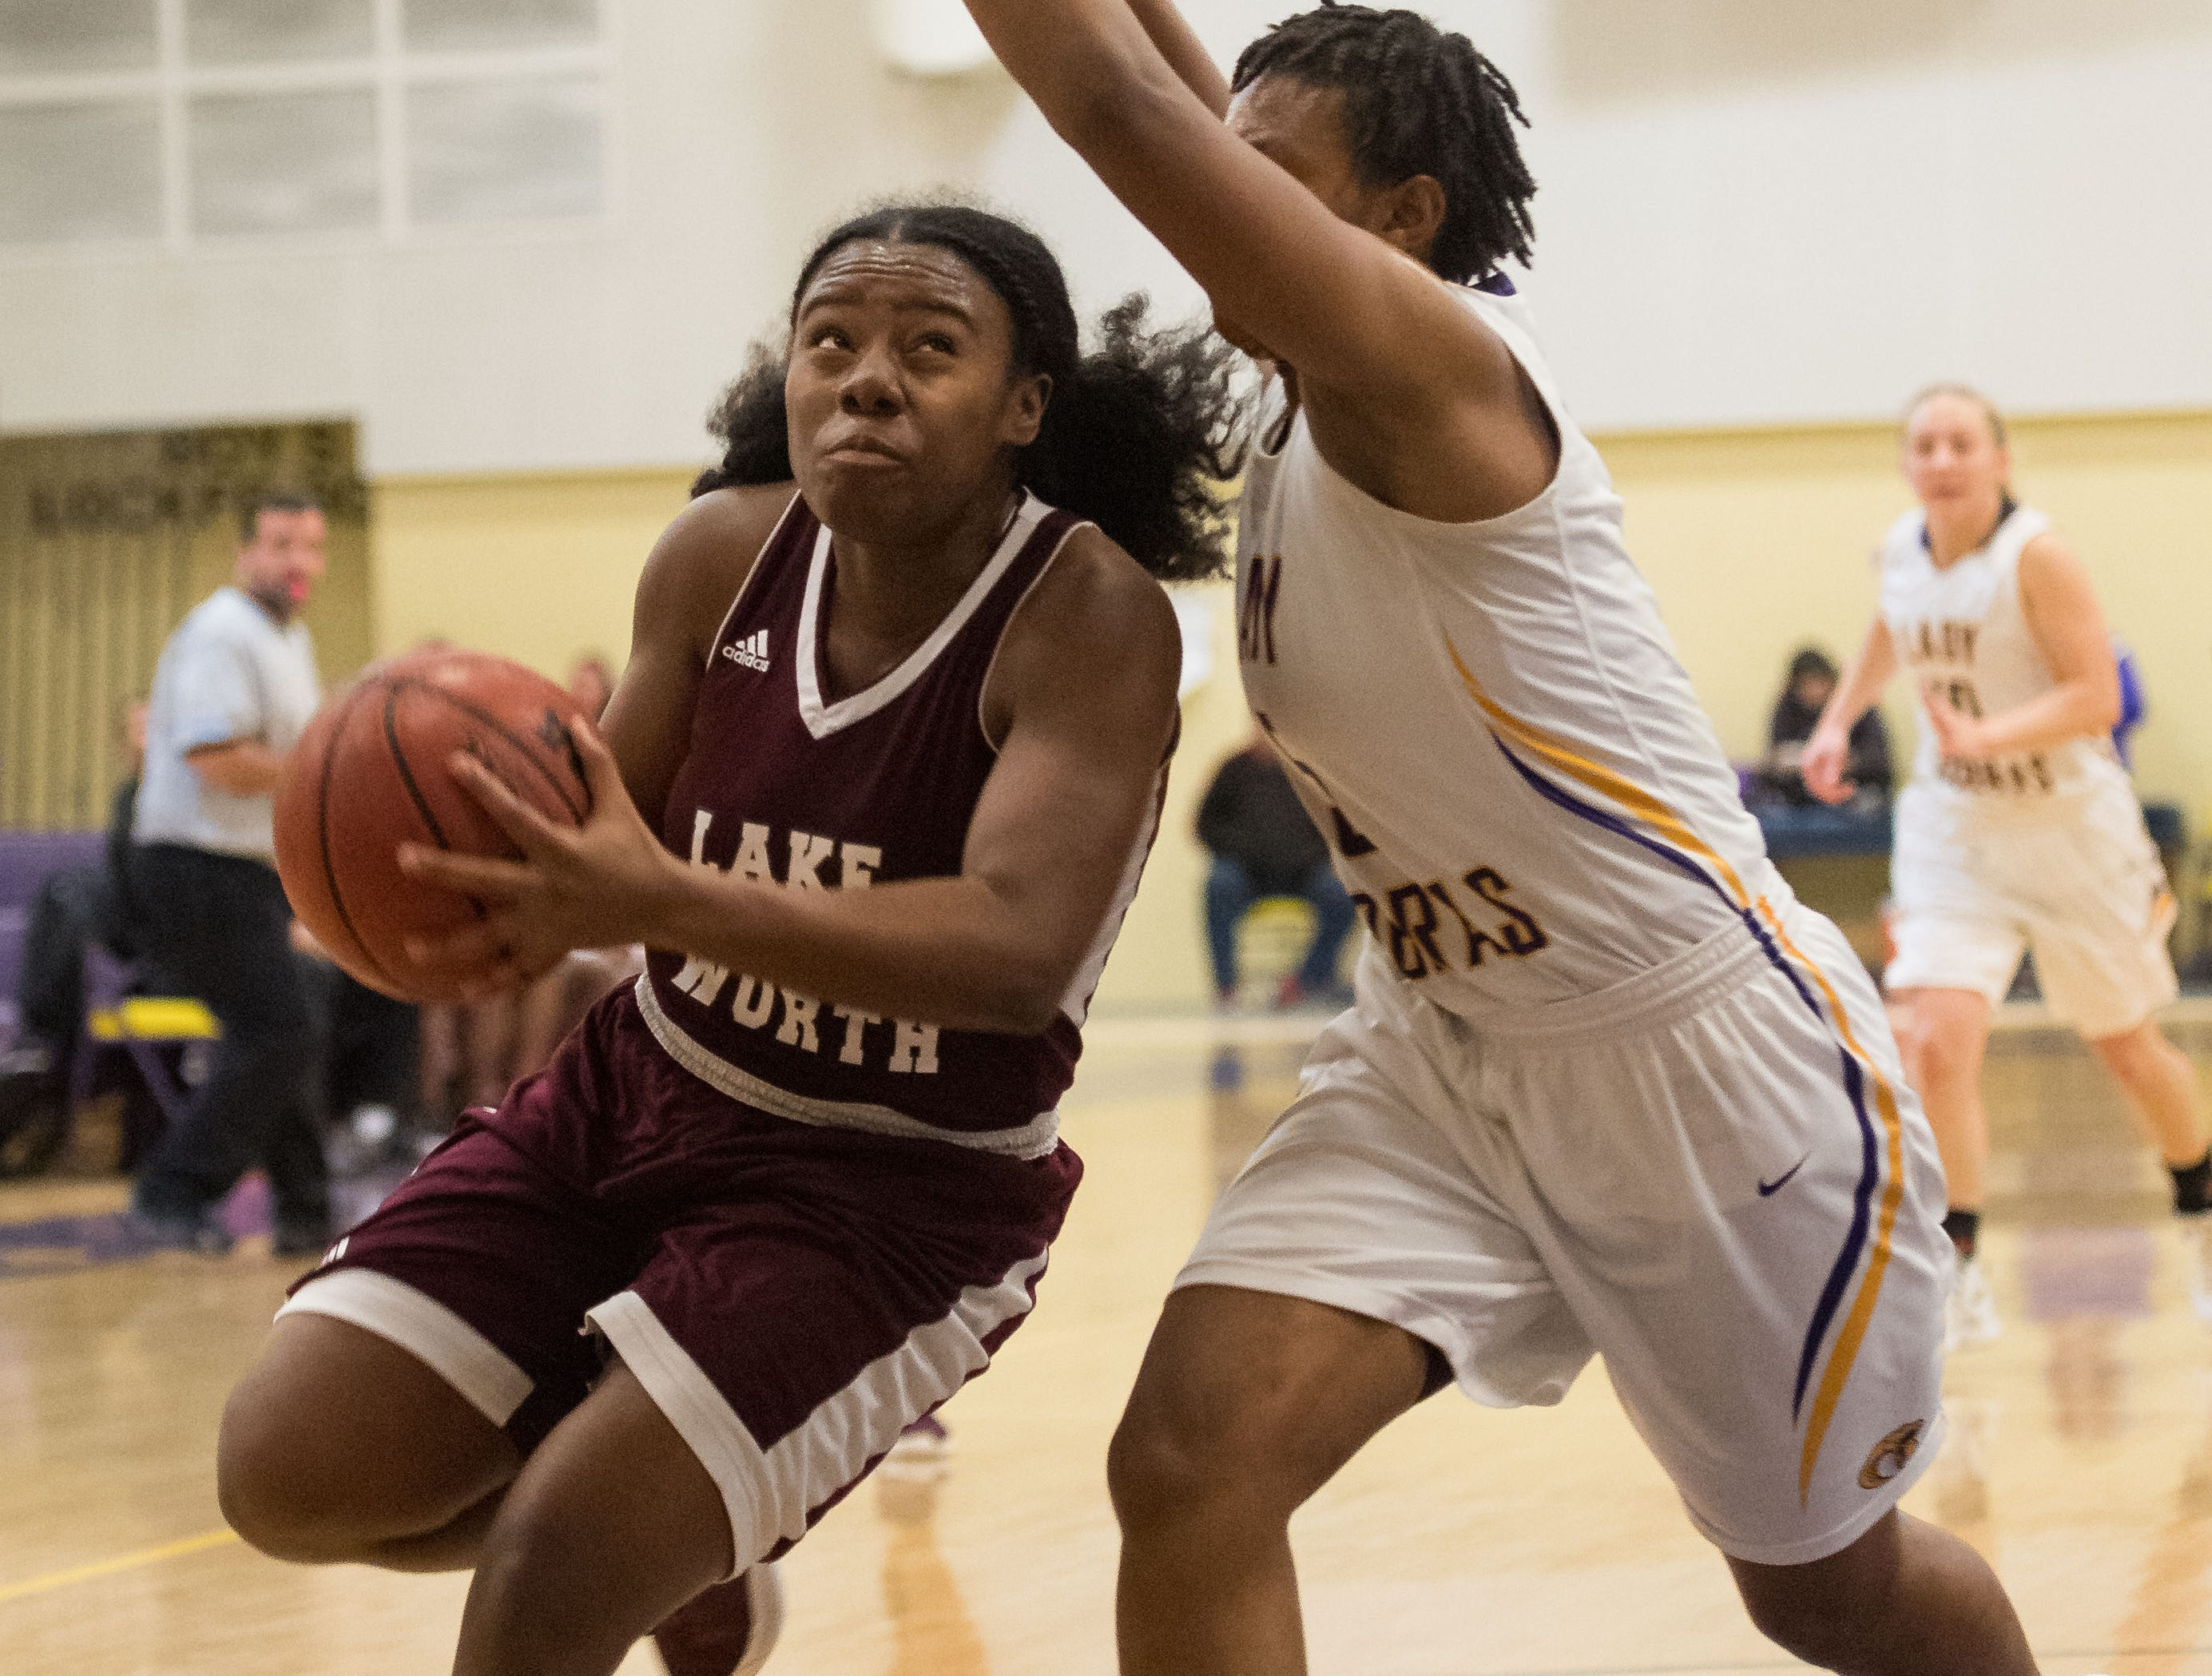 Fort Pierce Central plays against Lake Worth during the high school girls basketball game Thursday, Jan. 31, 2019, at Fort Pierce Central High School.